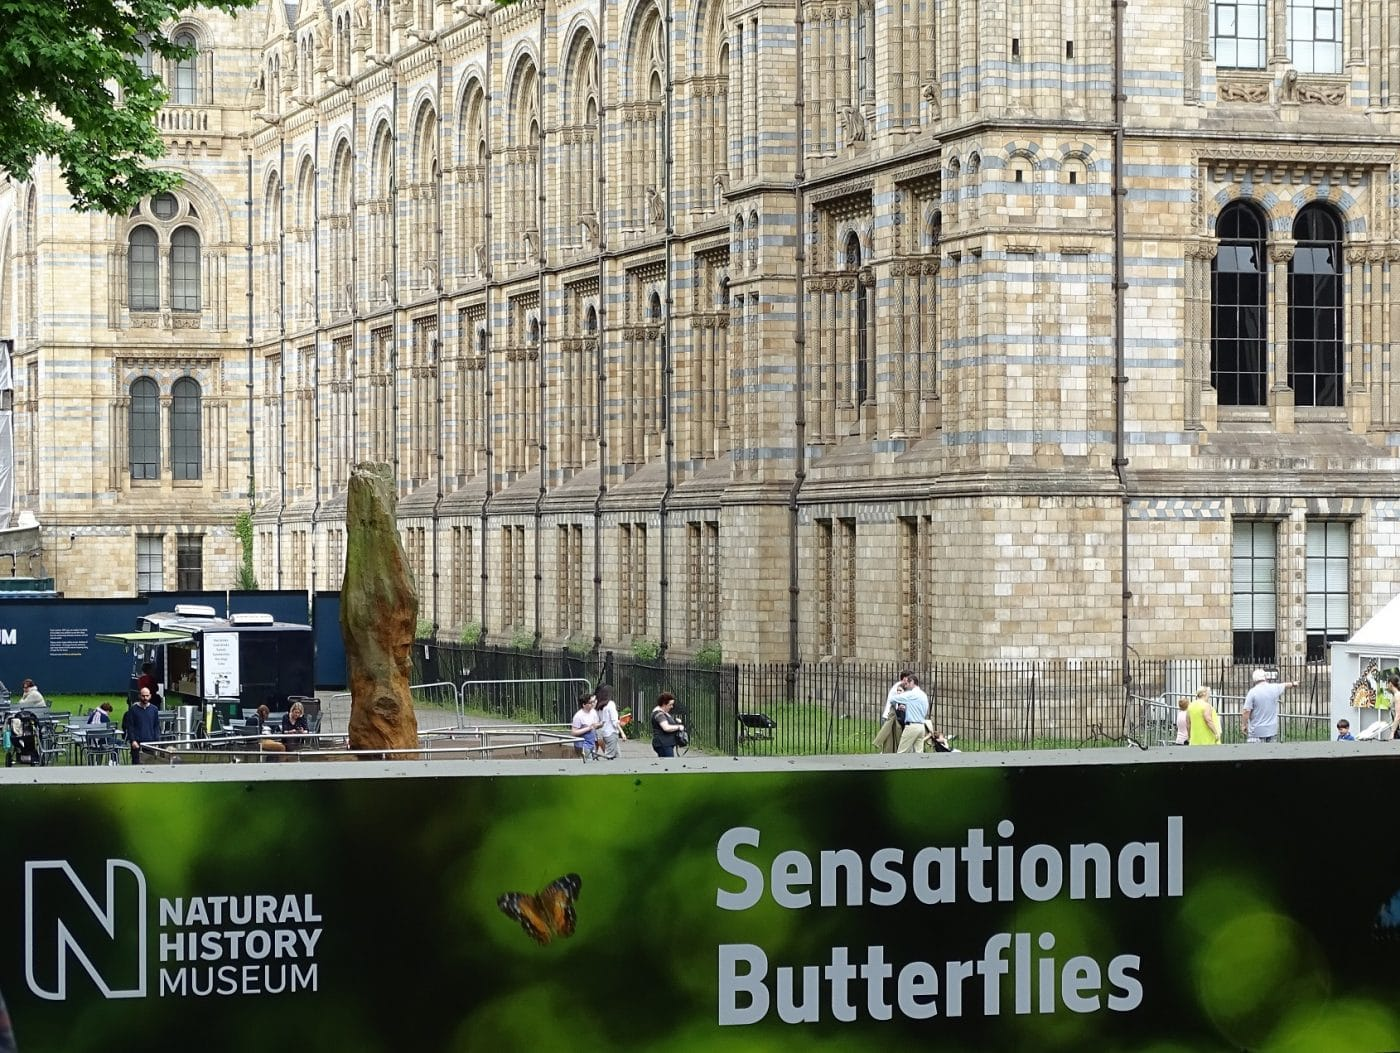 Enjoy free entry to the Natural History Museum in London